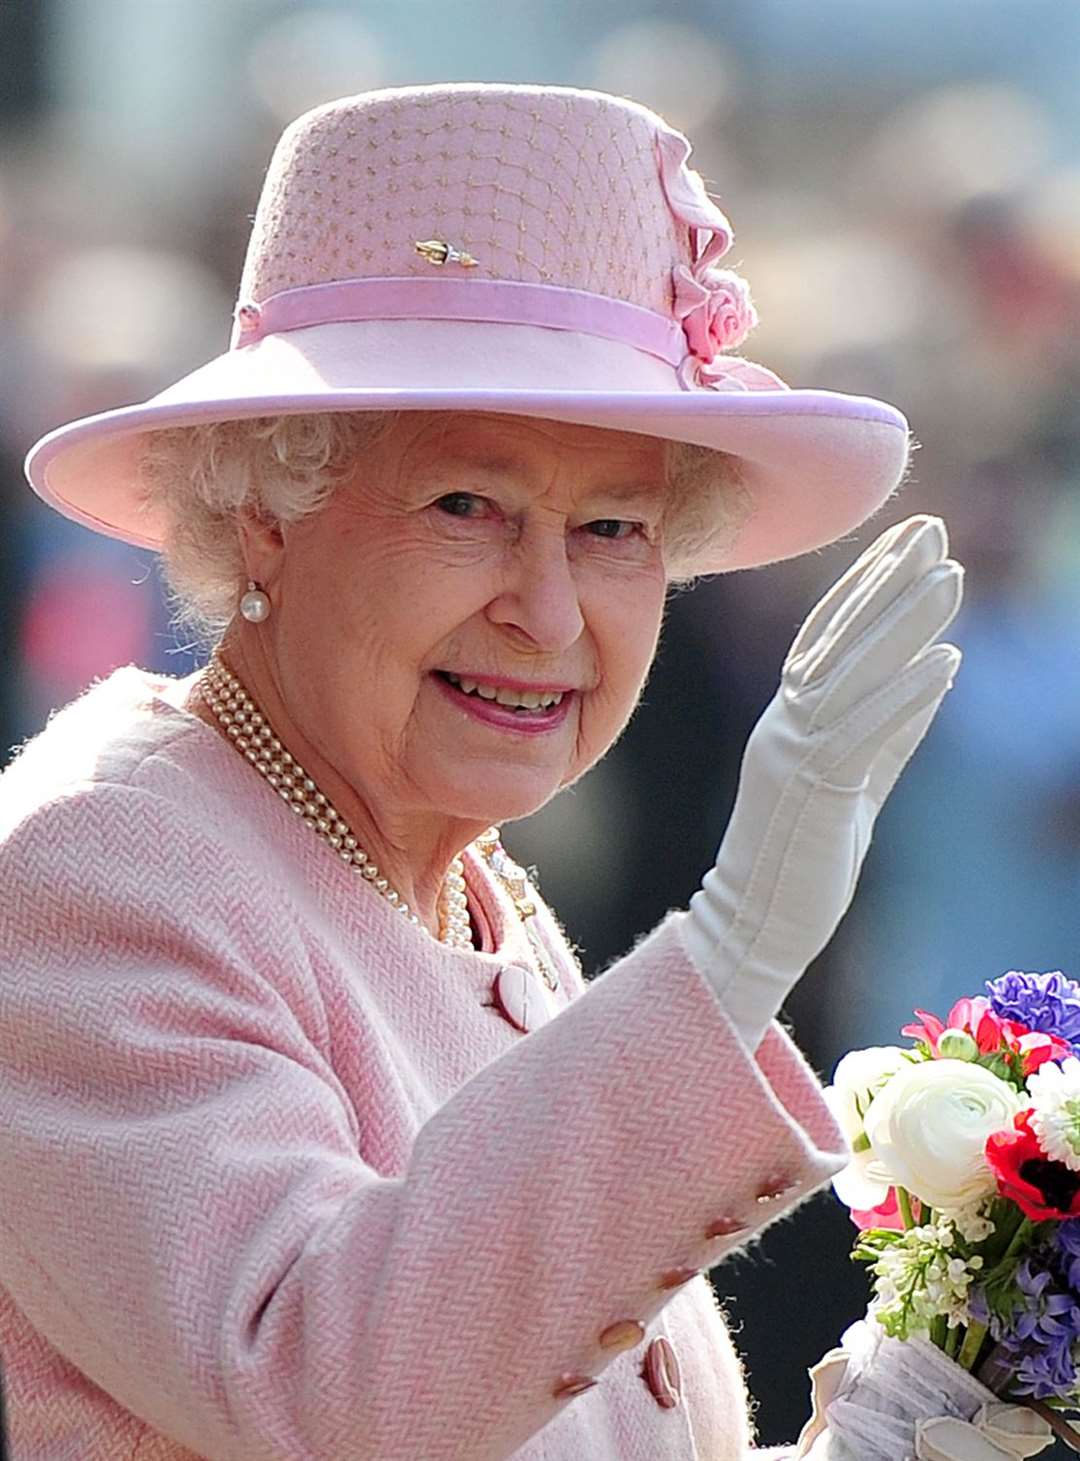 Her Majesty the Queen will open the Royal Papworth Hospital today